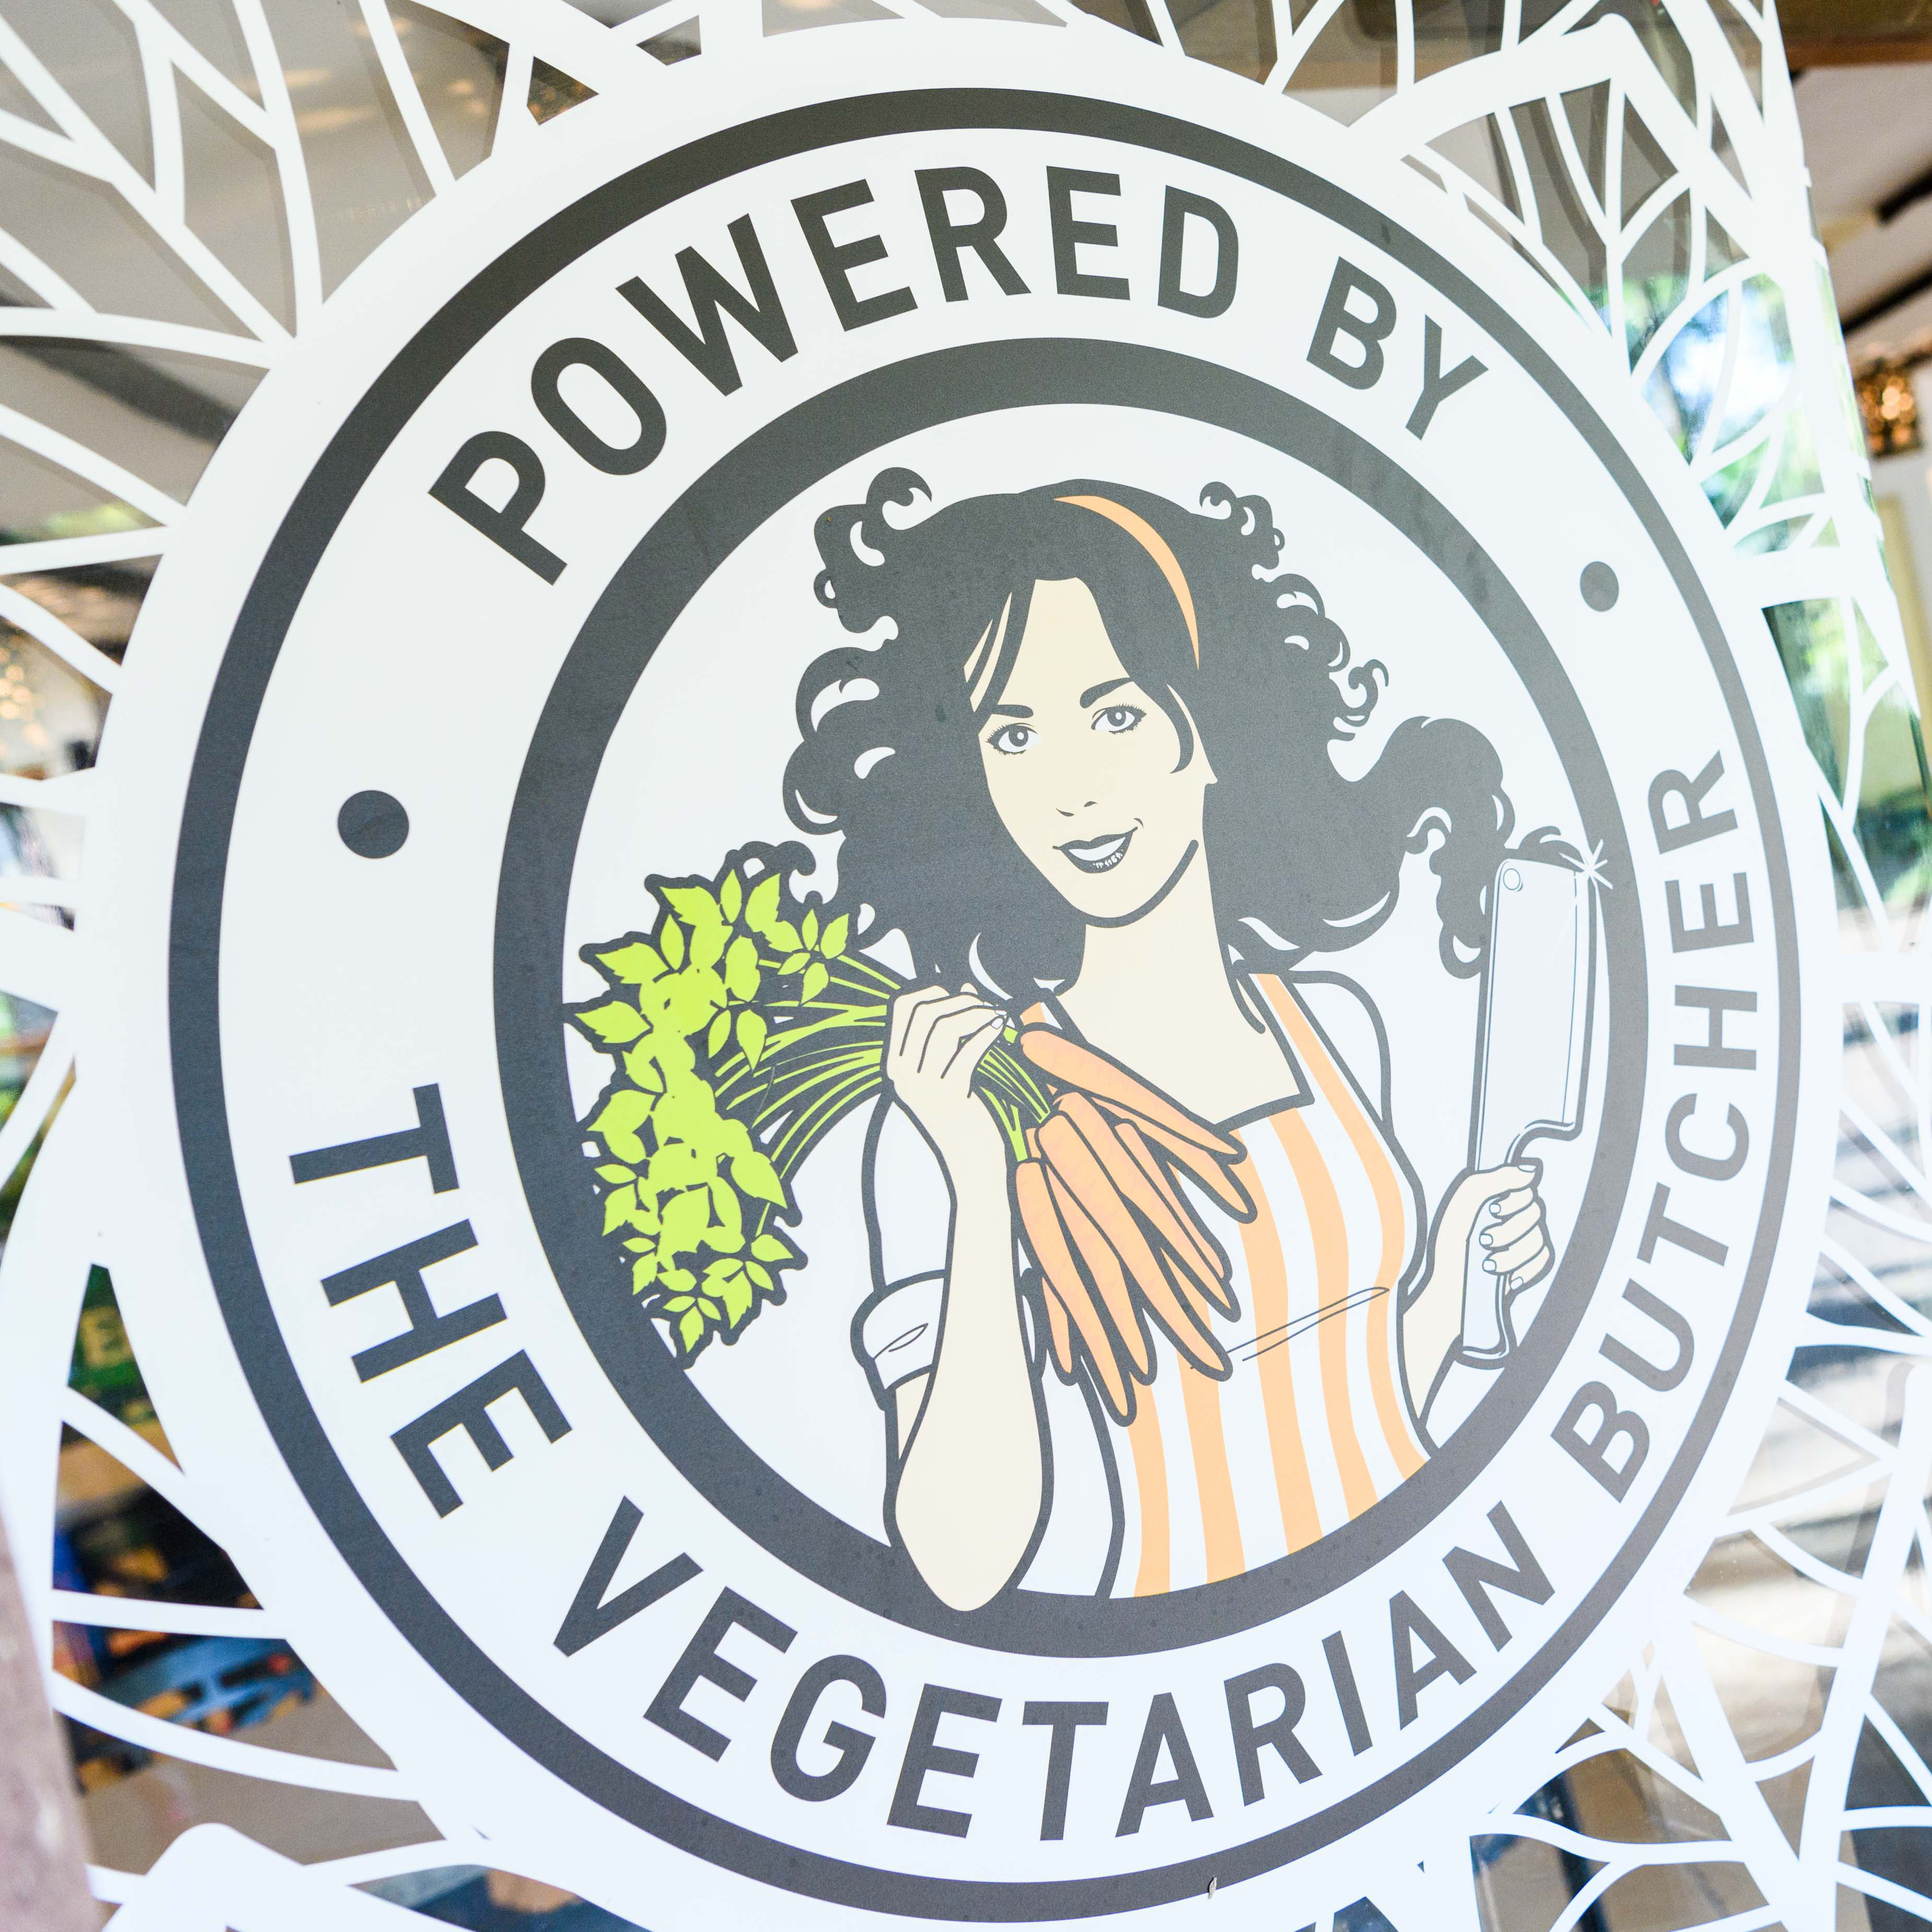 The Vegetarian Butcher: Family-Friendly Plant-Based Meals For A Good Cause